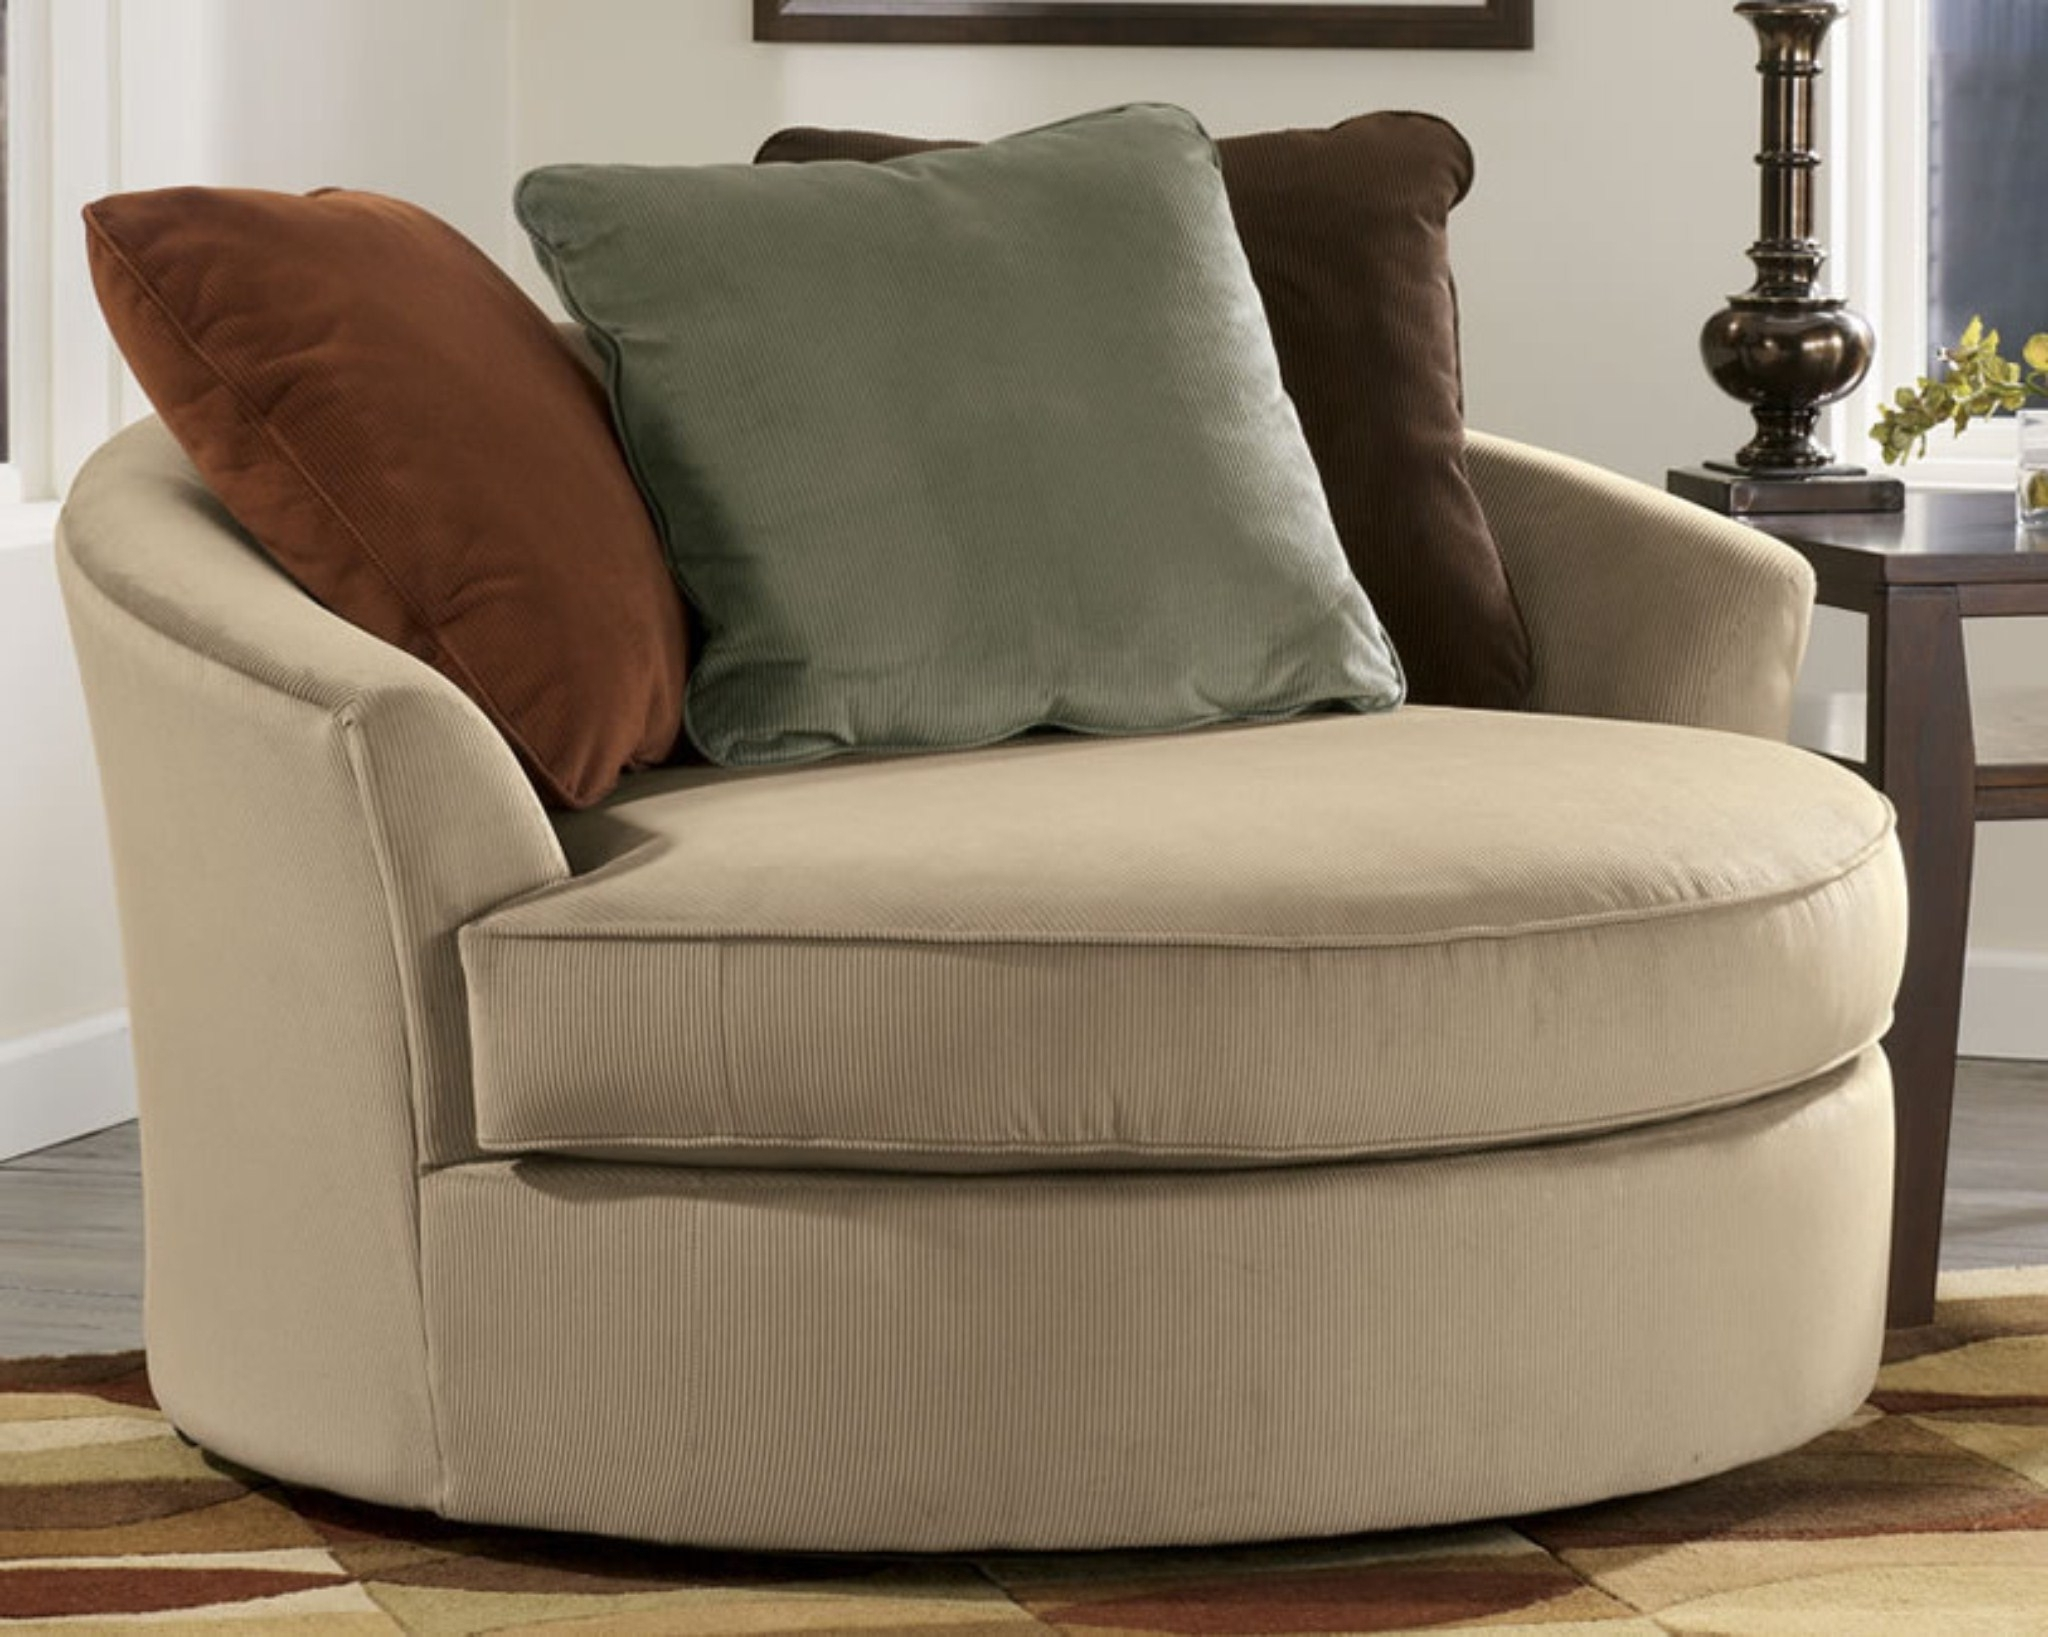 Most Recent Sofa : Luxury Round Swivel Sofa Chair Latest Large With Crescent With Round Swivel Sofa Chairs (View 2 of 20)